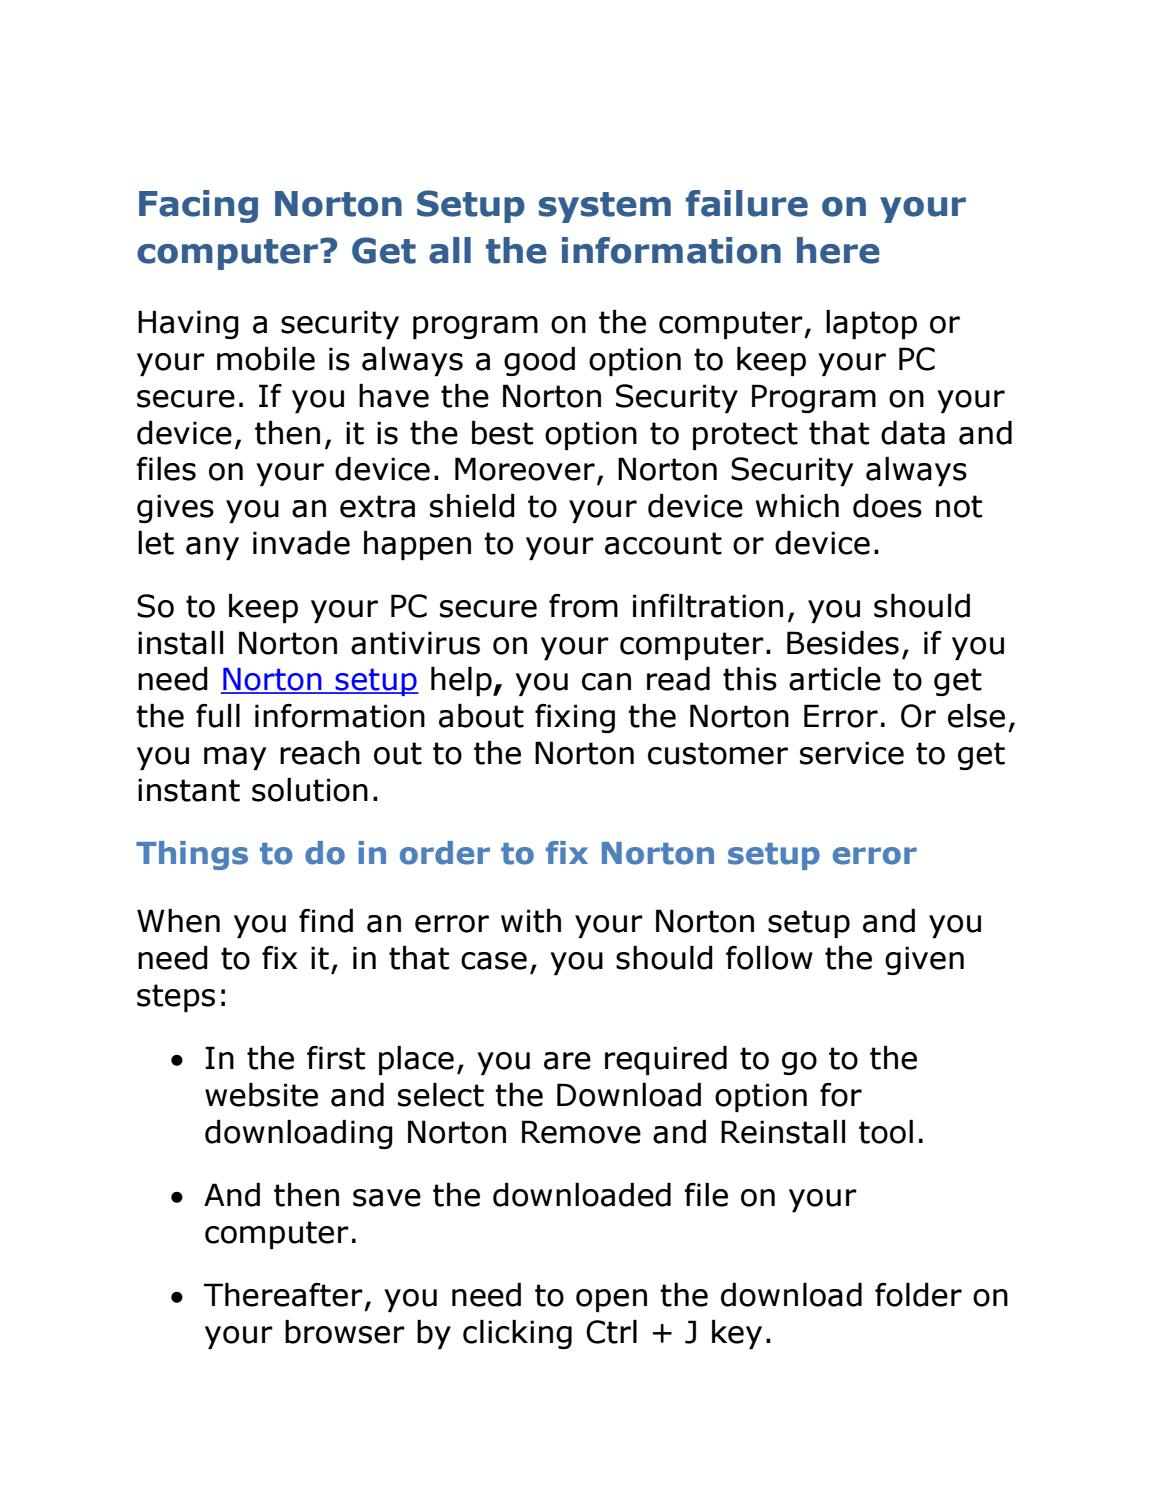 How to fix norton setup system error? by Anpuhelp - Issuu